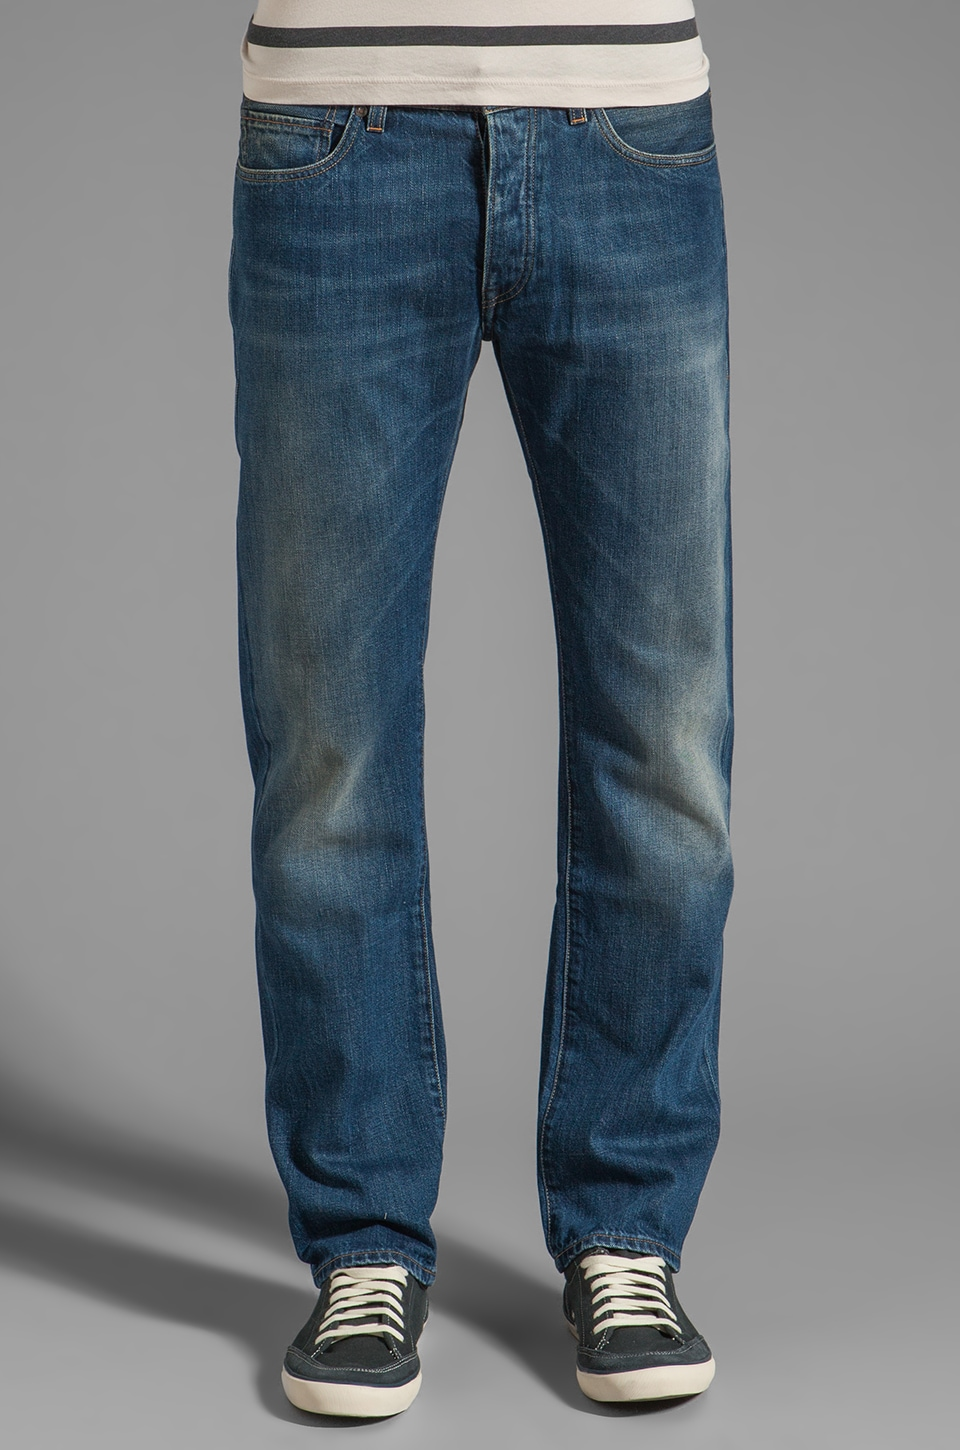 LEVI'S: Made & Crafted Ruler Straight Jeans in Wave